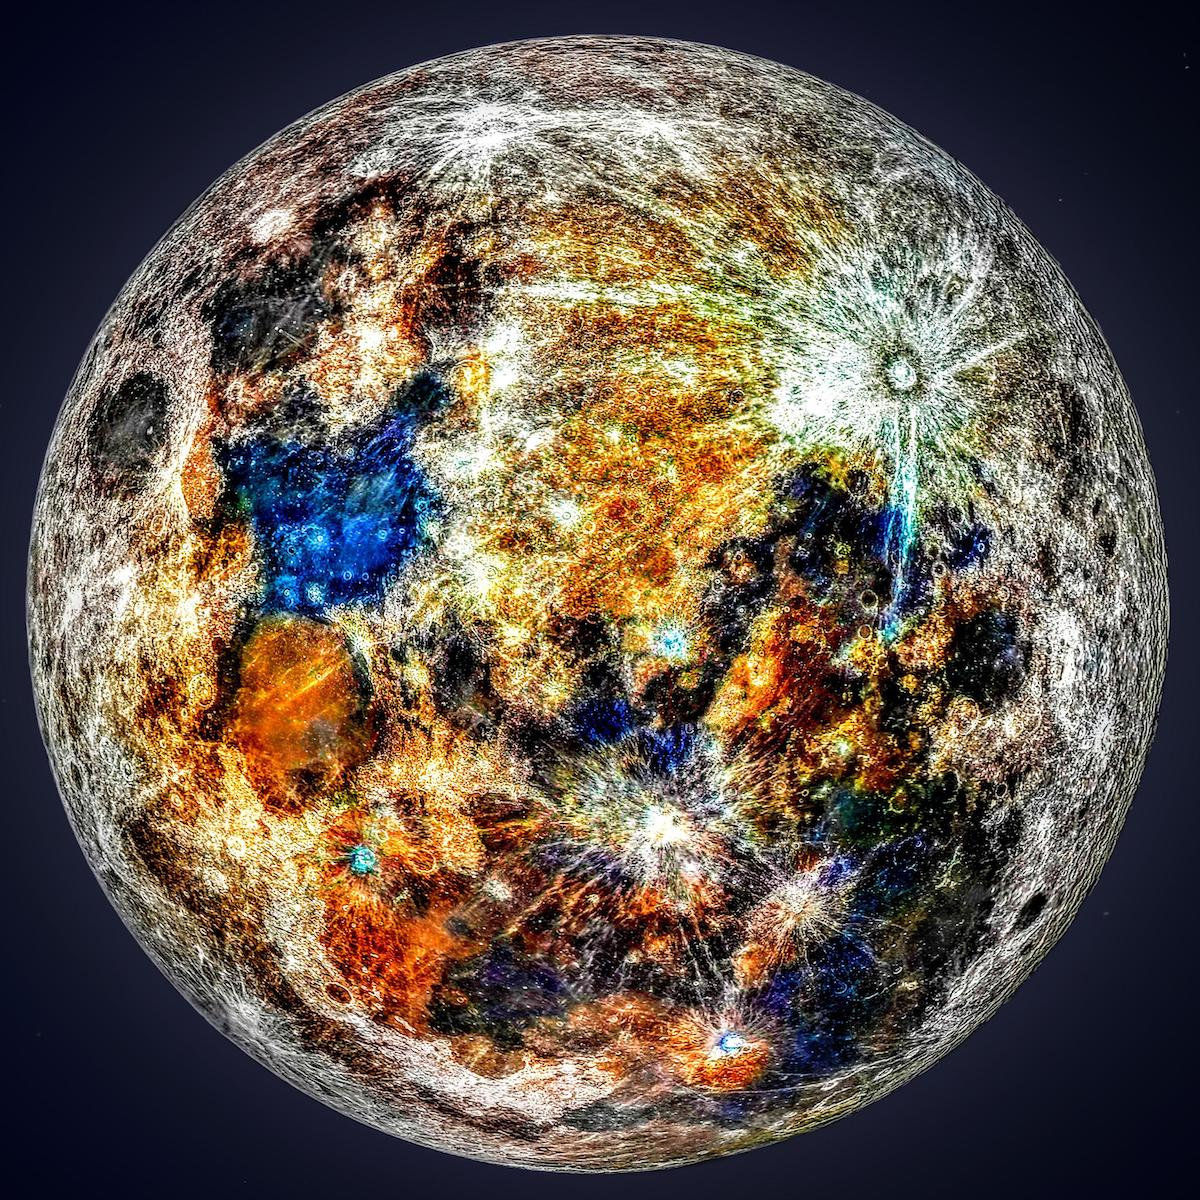 150,000 Photos Were Used To Reveal The Hidden Colors Of The Moon